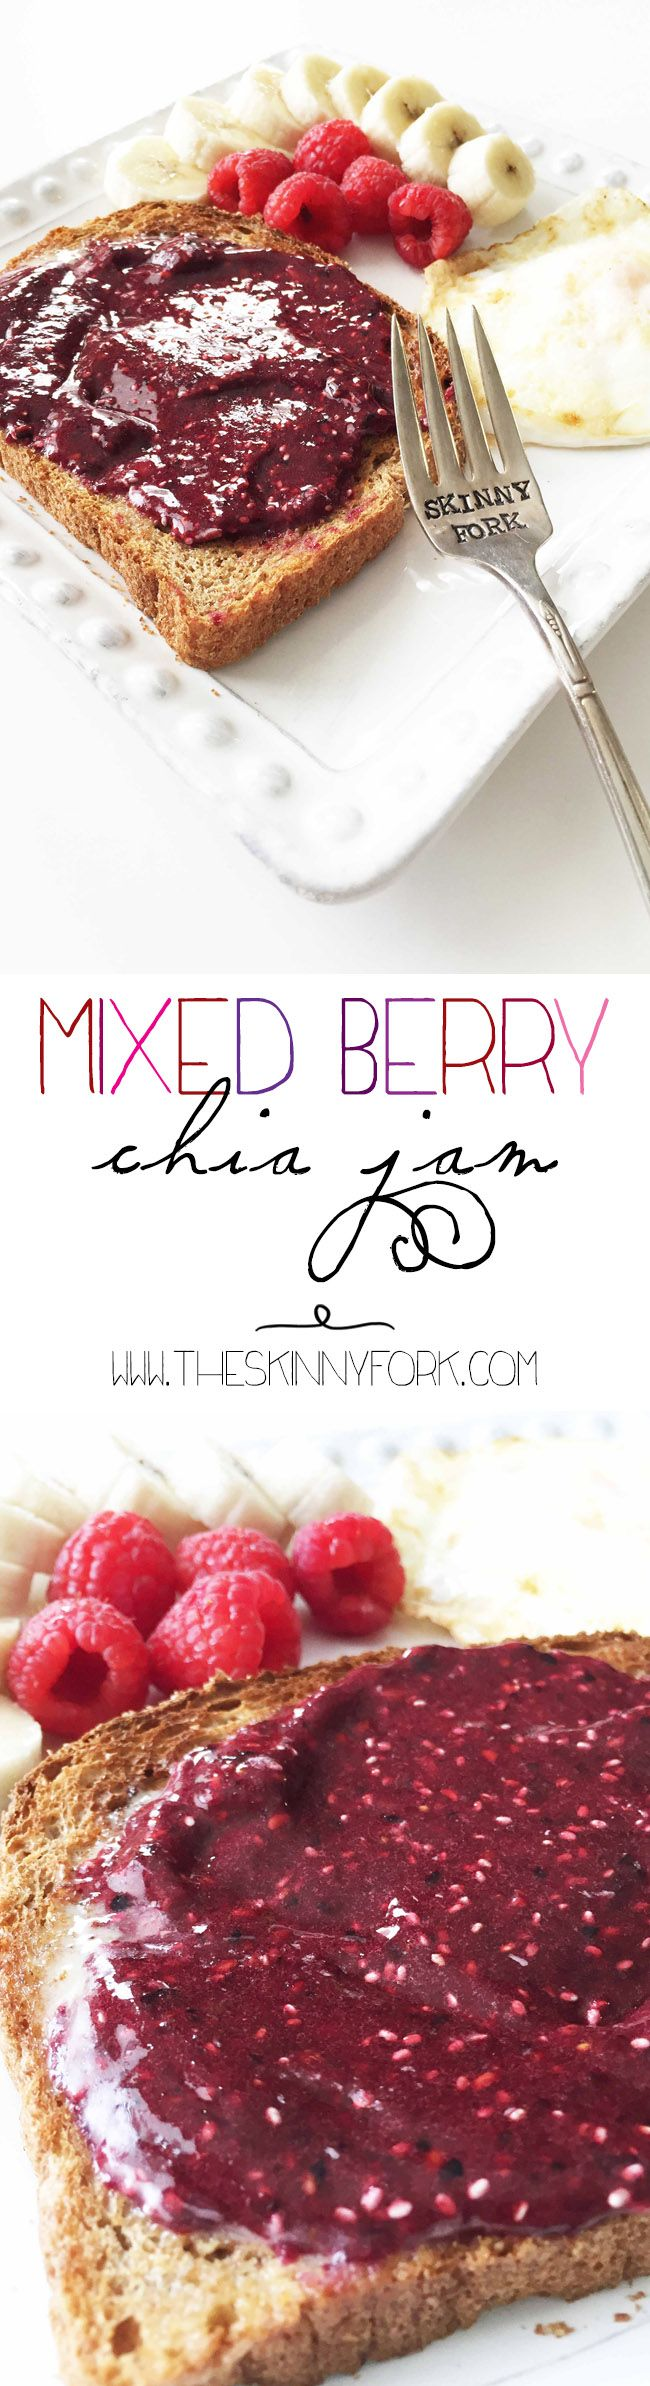 Are you excited for the Minions movie release? Make my Mixed Berry Chia Jam for your Minions movie night! It's gluten free, sugar free, pectin free, vegan, and super delicious! Plus, it's so easy the kids can help make it! TheSkinnyFork.com #MinionsMovieNight #Ad